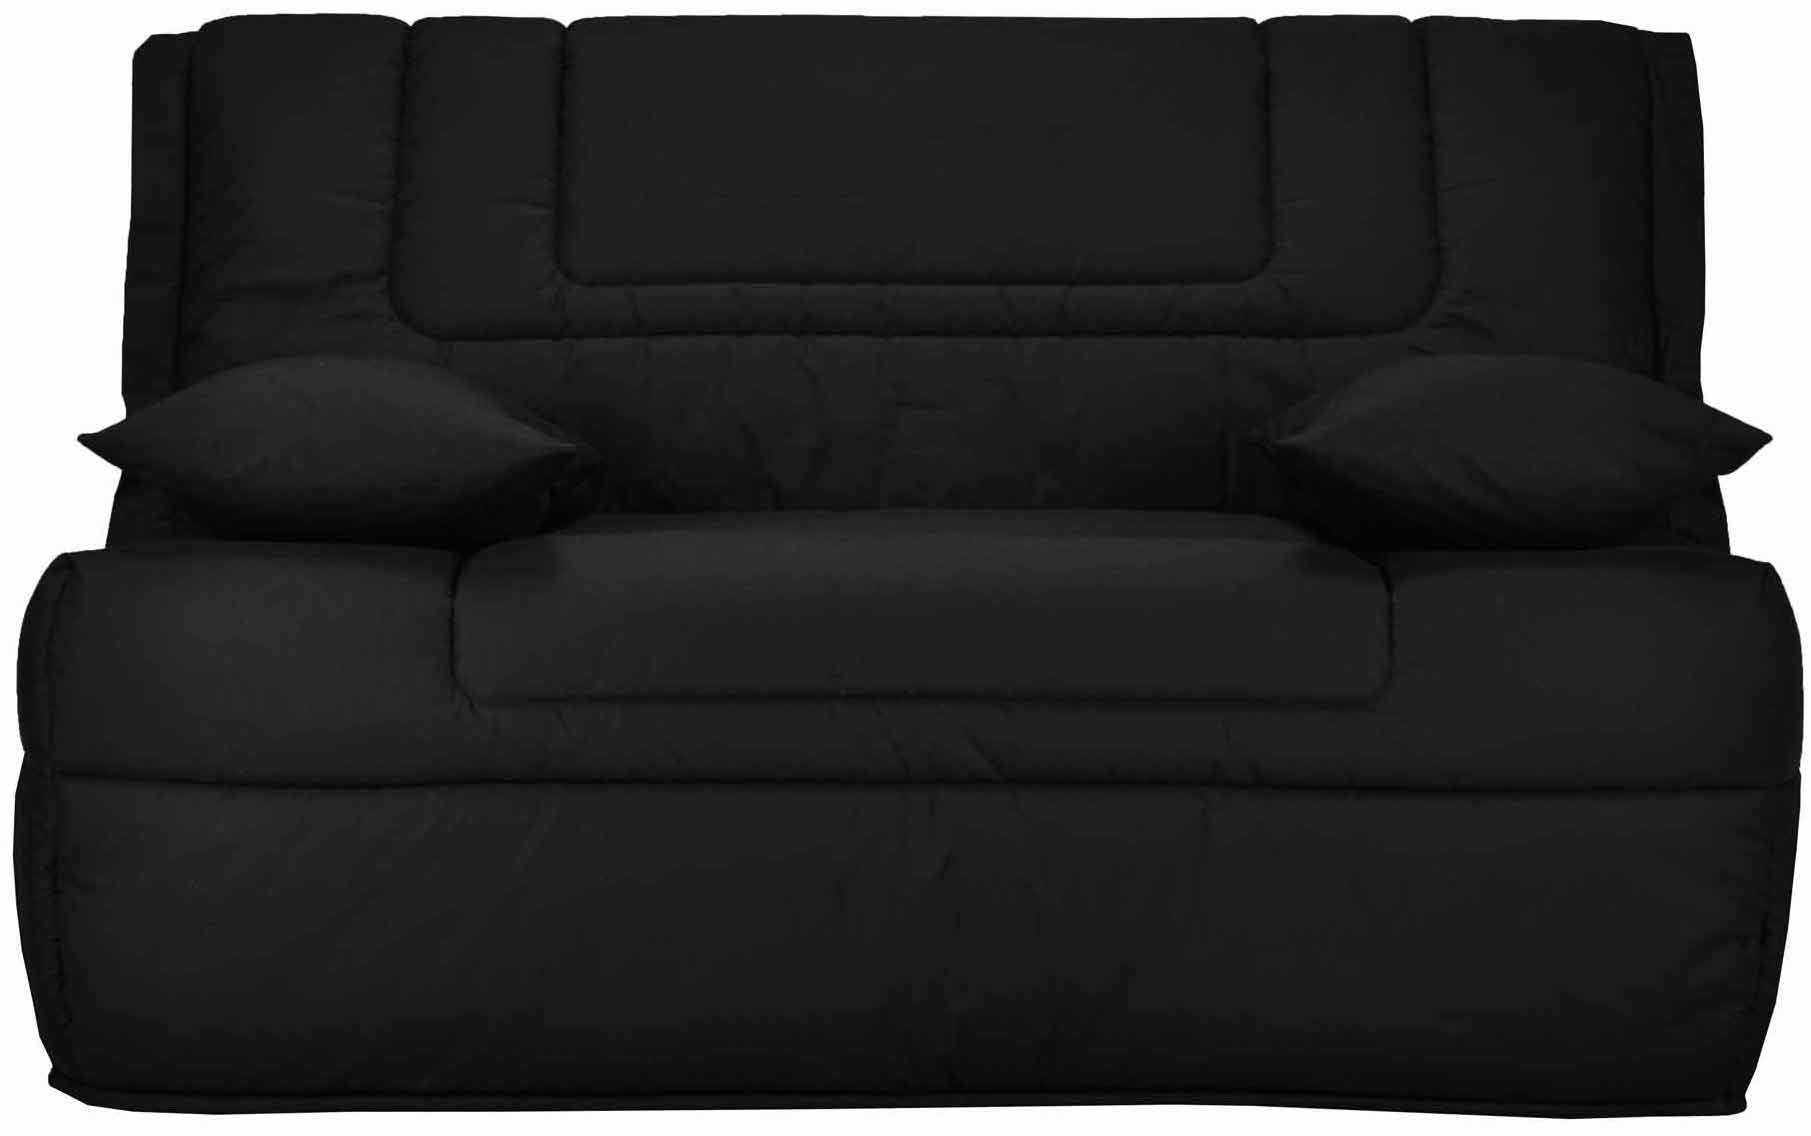 banquette bz noir 140 matelas 9 cm calamea. Black Bedroom Furniture Sets. Home Design Ideas